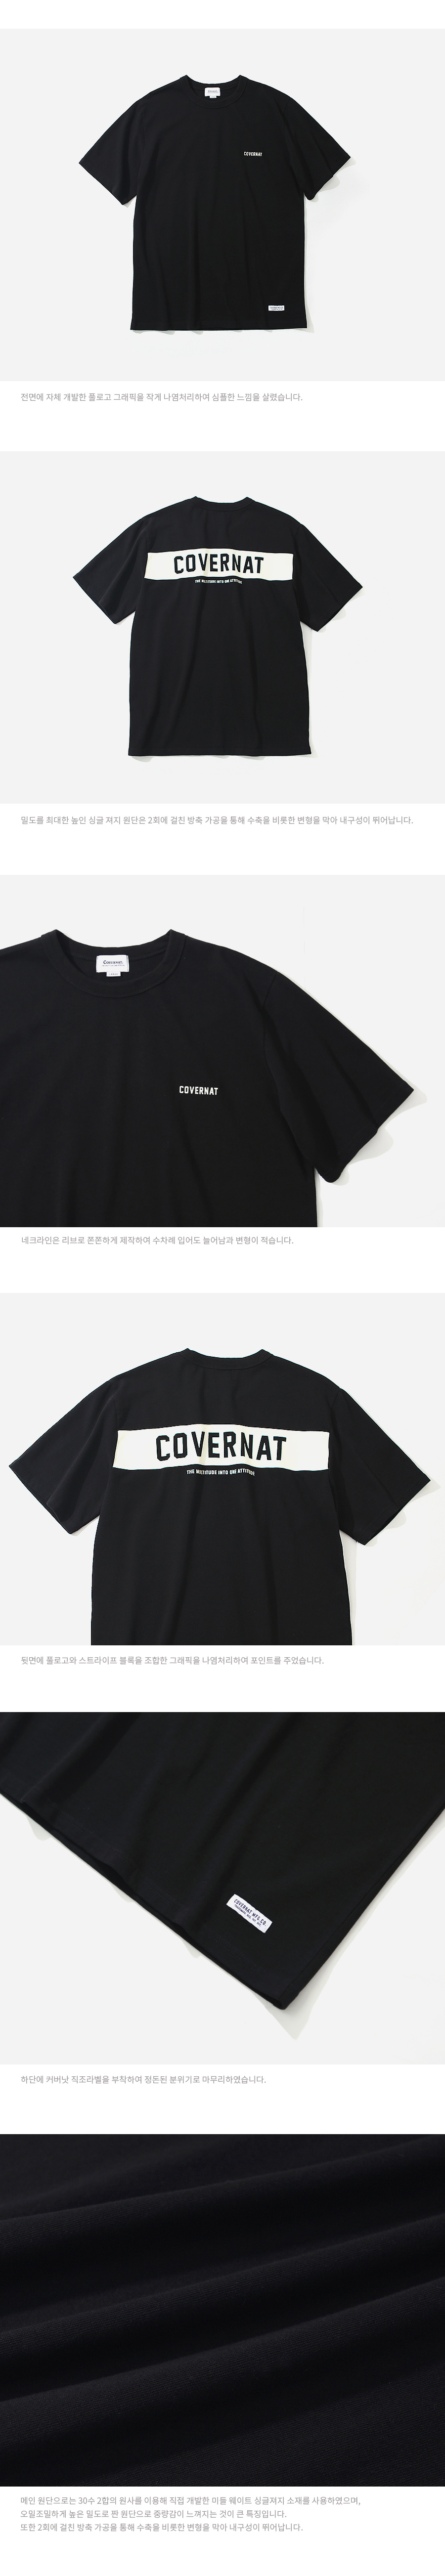 커버낫(COVERNAT) S/S TEAM T-SHIRTS BLACK